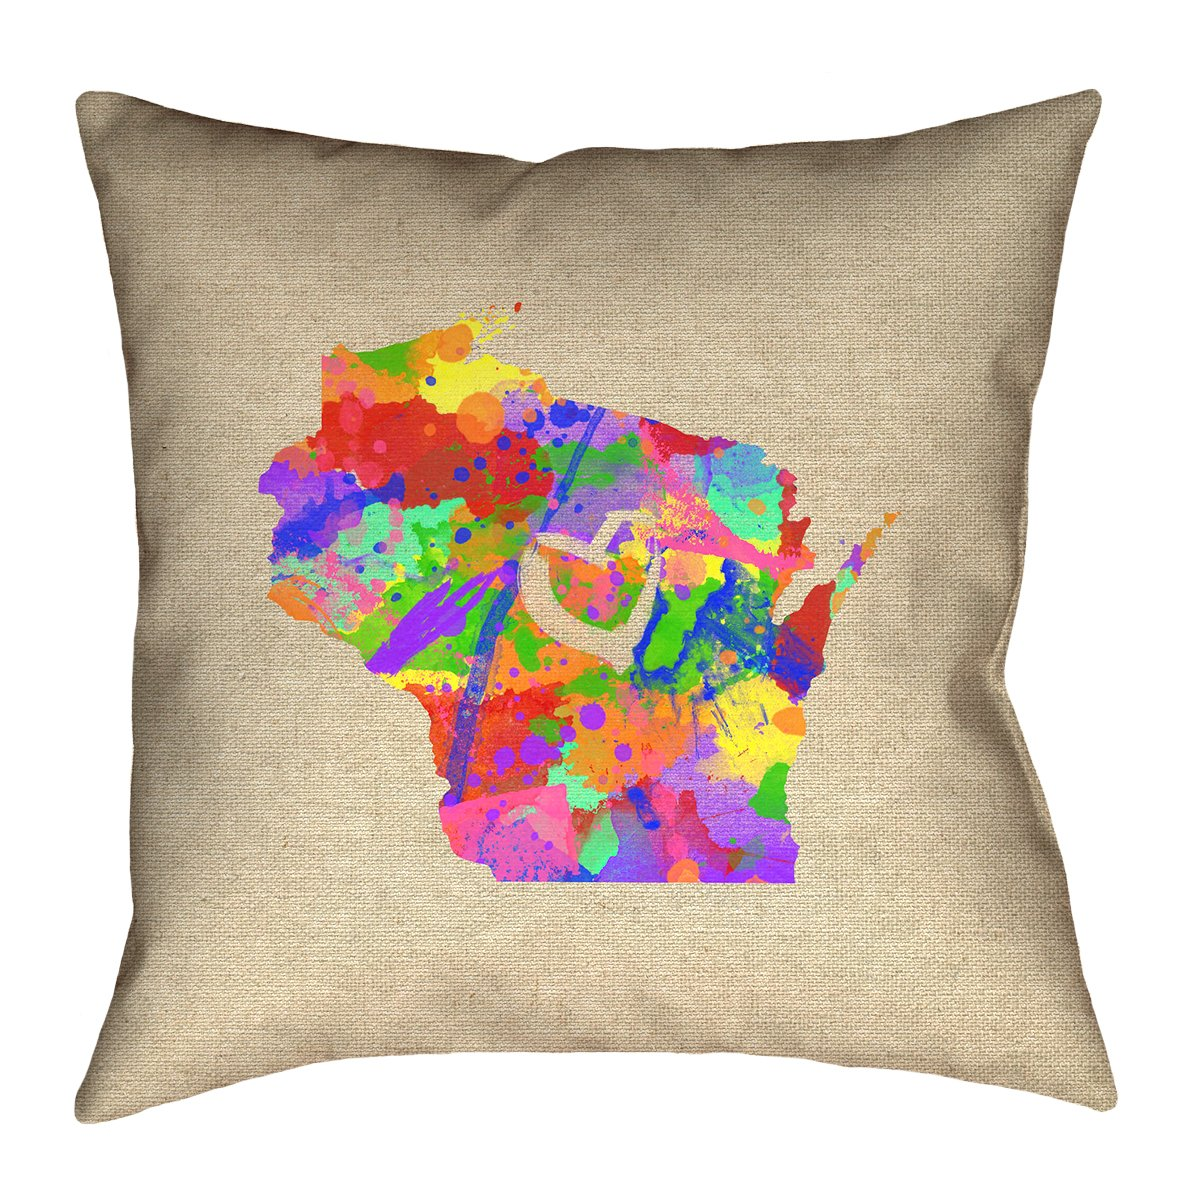 ArtVerse Katelyn Smith 26 x 26 Poly Twill Double Sided Print with Concealed Zipper /& Insert Washington Love Watercolor Pillow